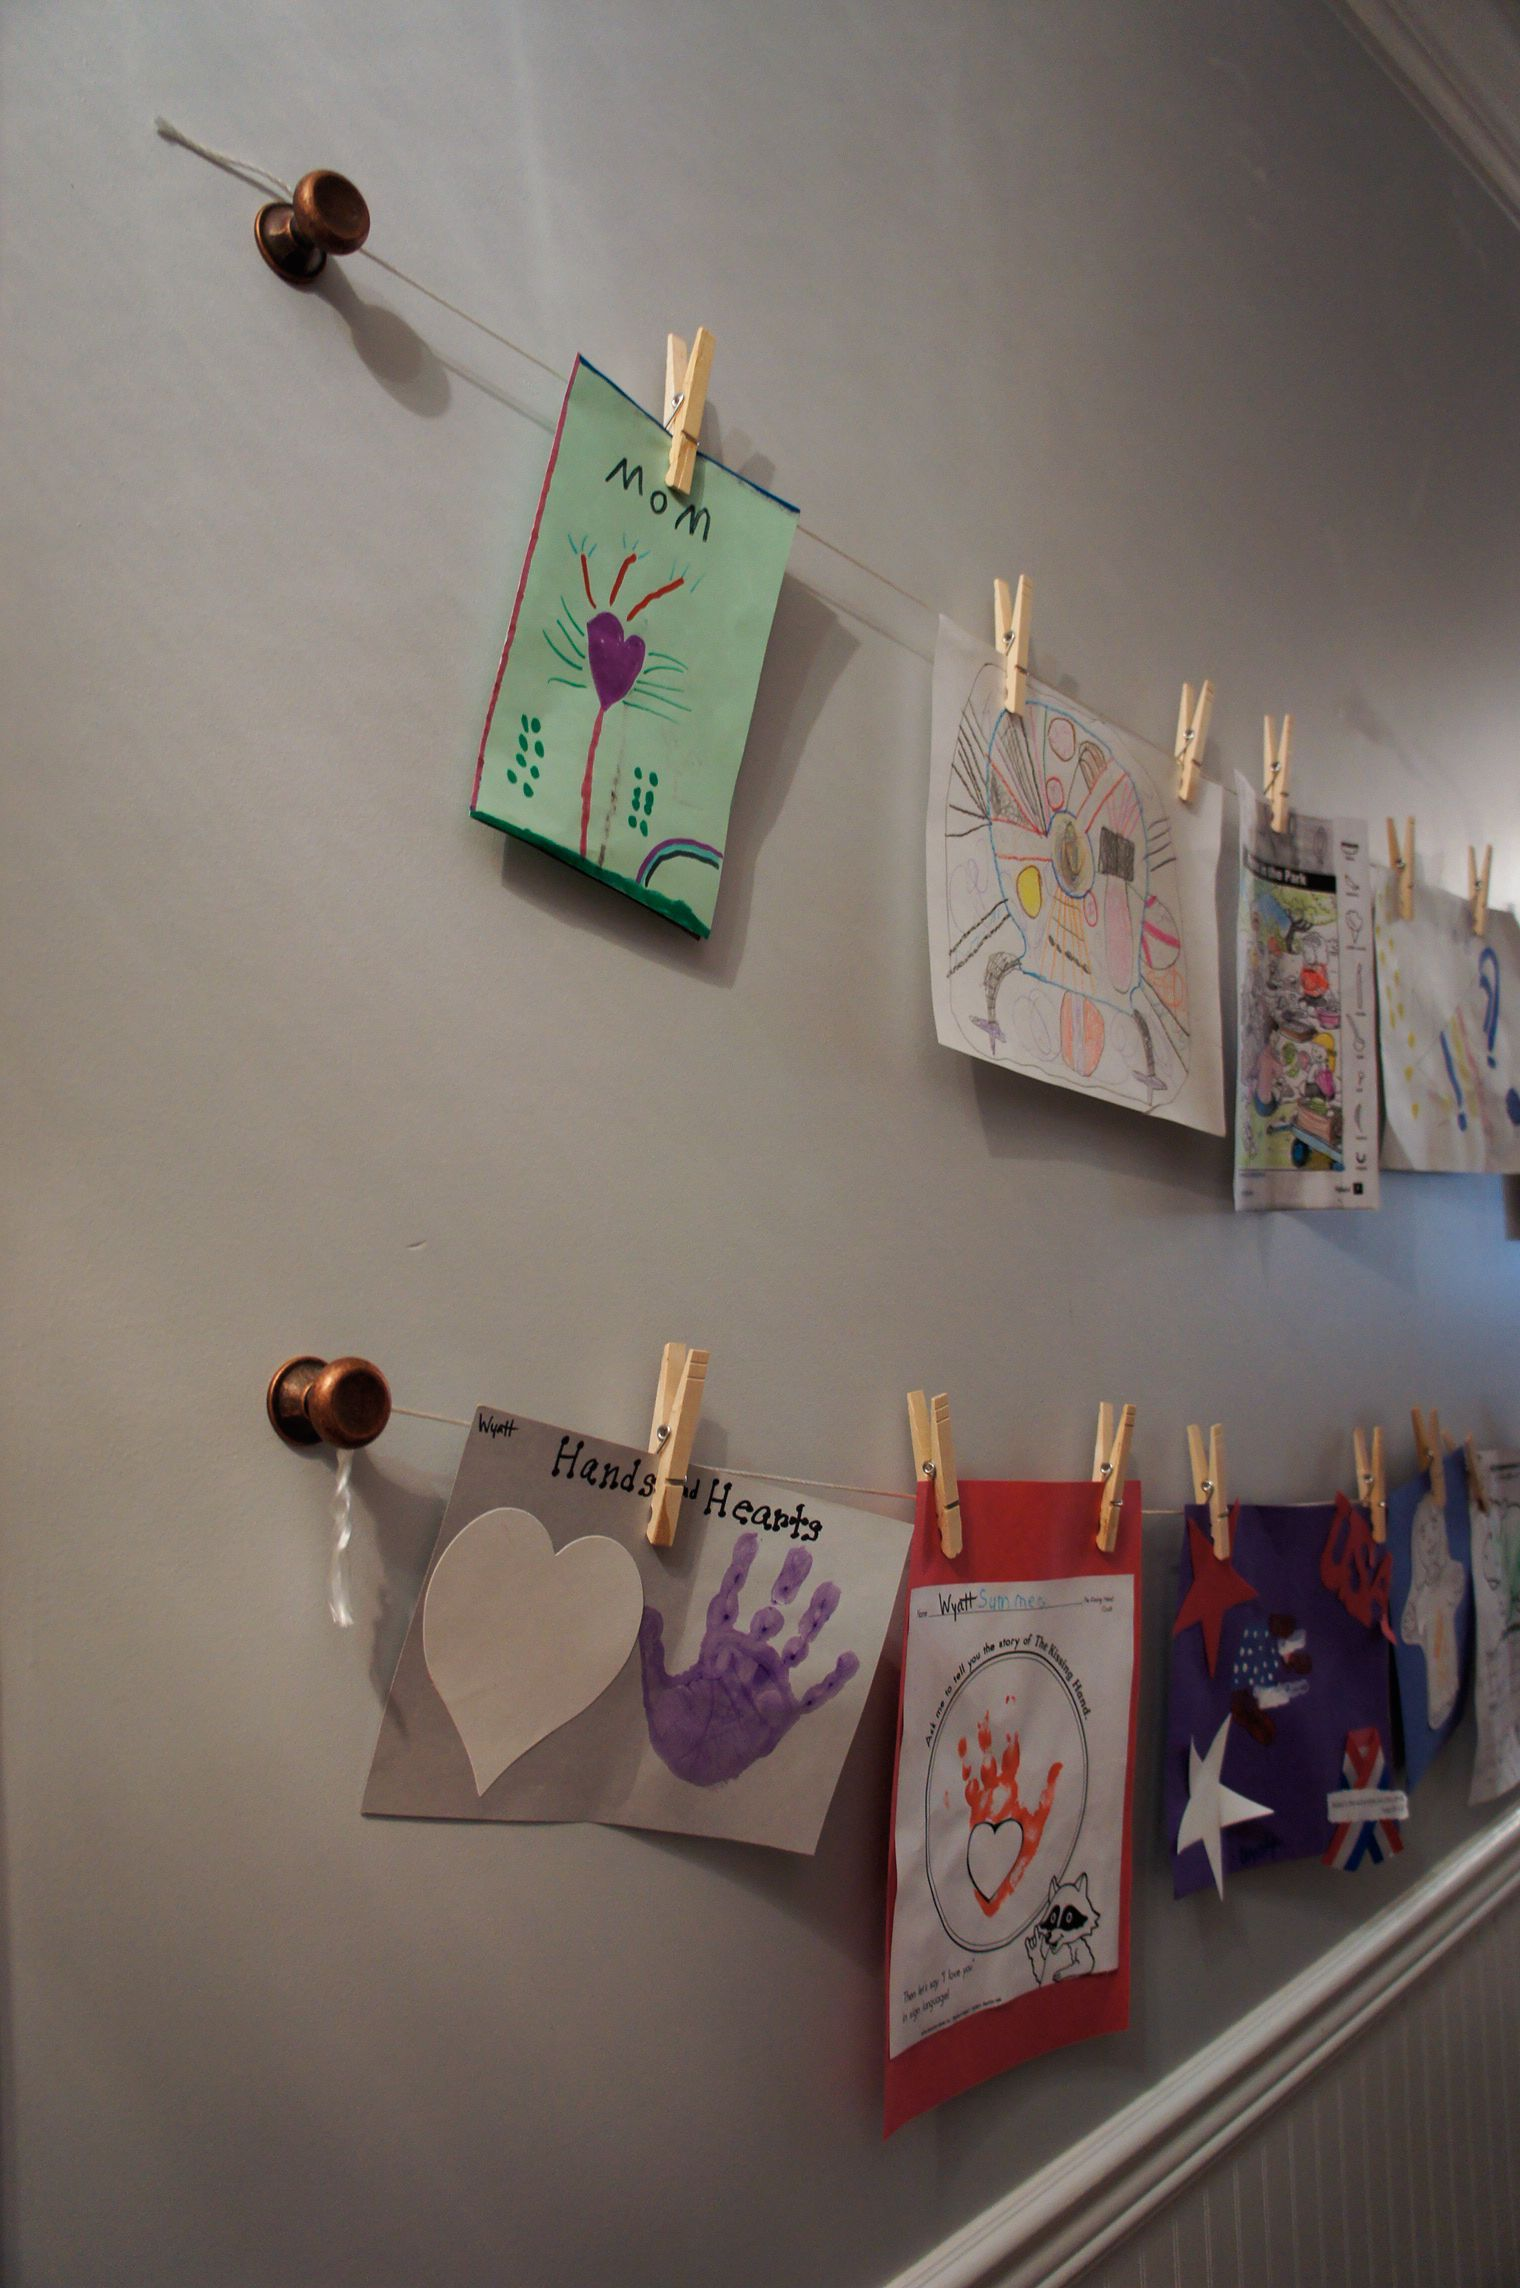 Childs Hallway Art Gallery Display With Knobs, String, Wooden Clothespins